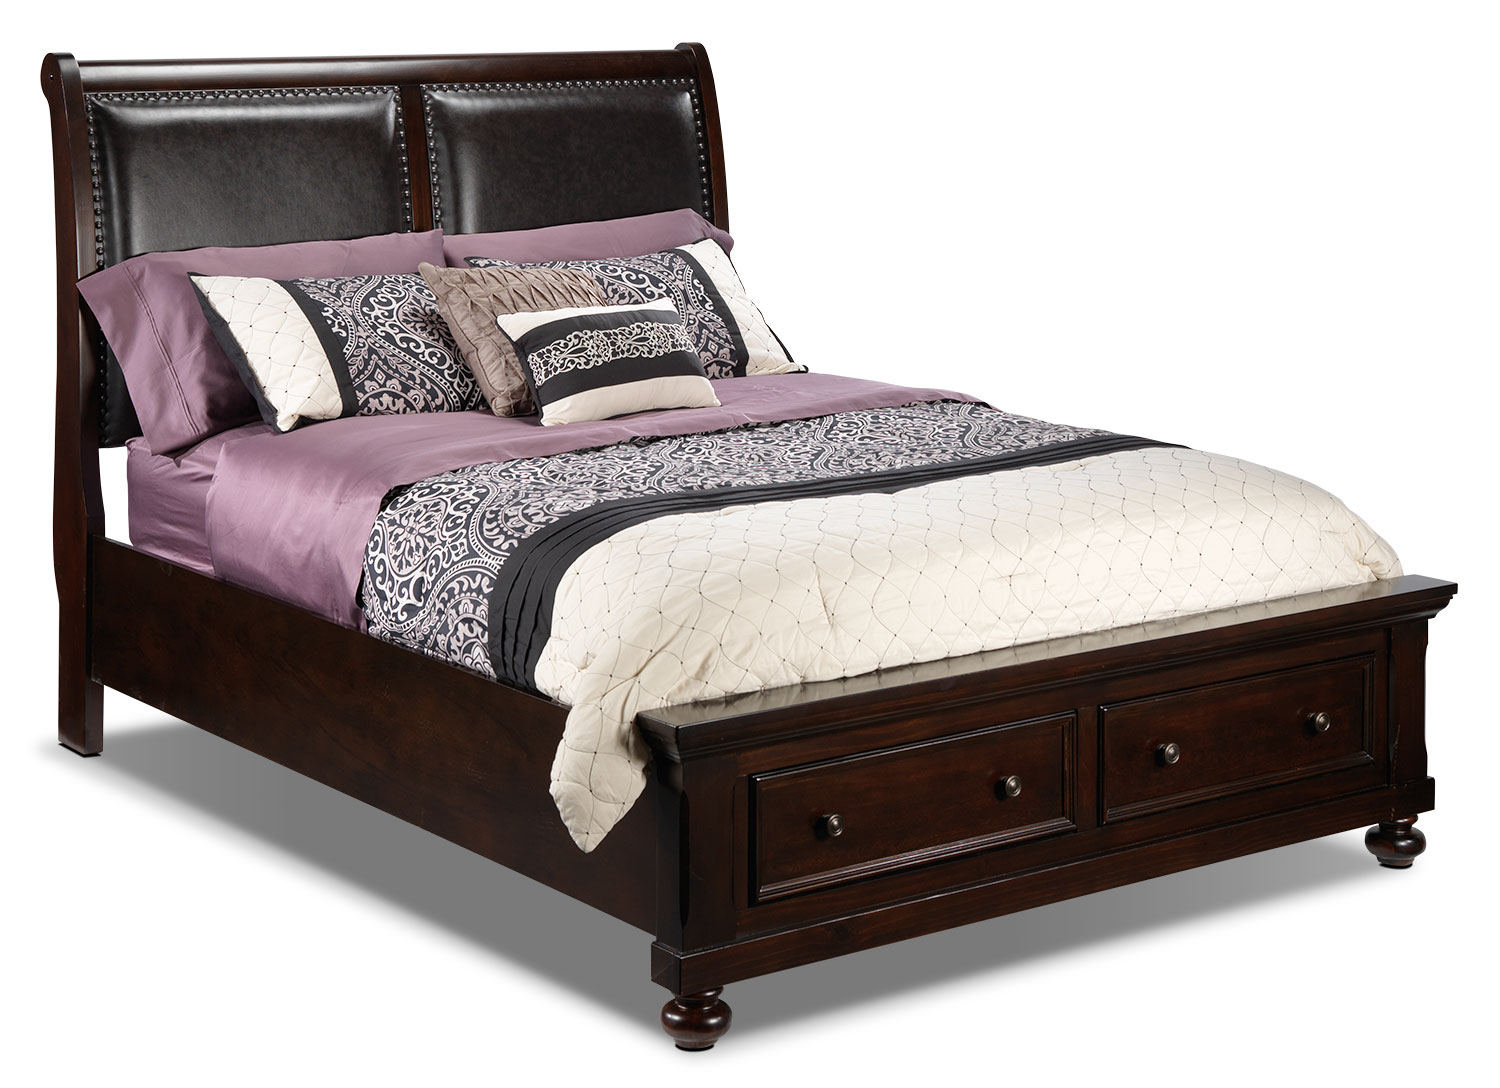 Chester Queen Bed - Cherry